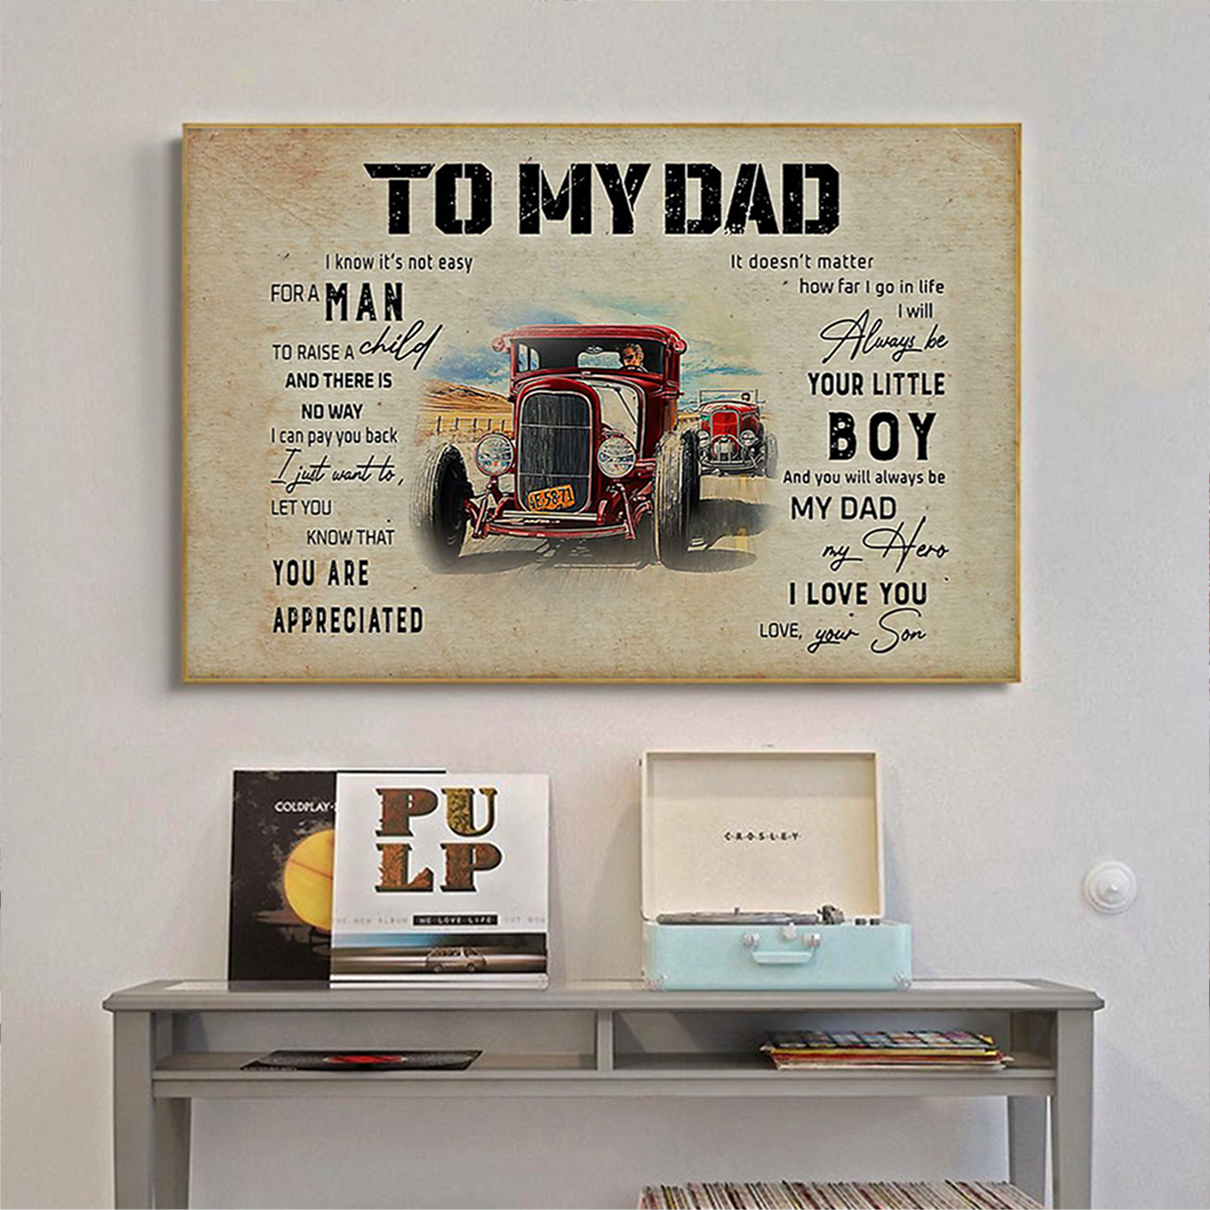 Hod rod to my dad your son poster A3